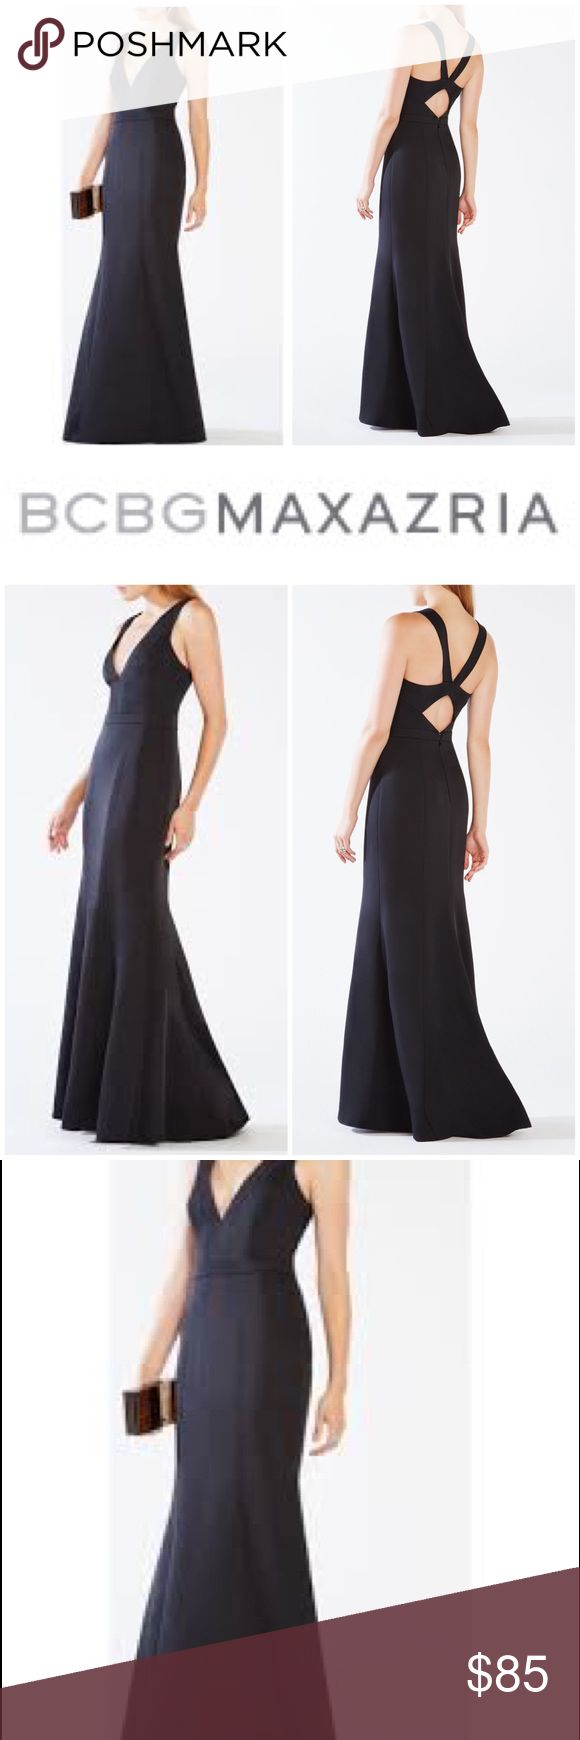 """New w/ Tags BCBG Robs Cutout Gown in Black  Size10 New with tags, bcbgmaxazria black Riva Cutout Gown - gorgeous plunge v-neck and clout back. Mid weight, true to fit.   Size 10  Bust: 38.5"""" Waist: 30.5"""" High hip: 36"""" Low hip: 41""""  Originally bought for a client, I'm currently cleaning out my client closets. Open to offers, especially on bundles. I give 15% off bundles of 3 or more. shipping cost the same if you buy one or many items. I give a free gift with every purchase! Your purchase…"""